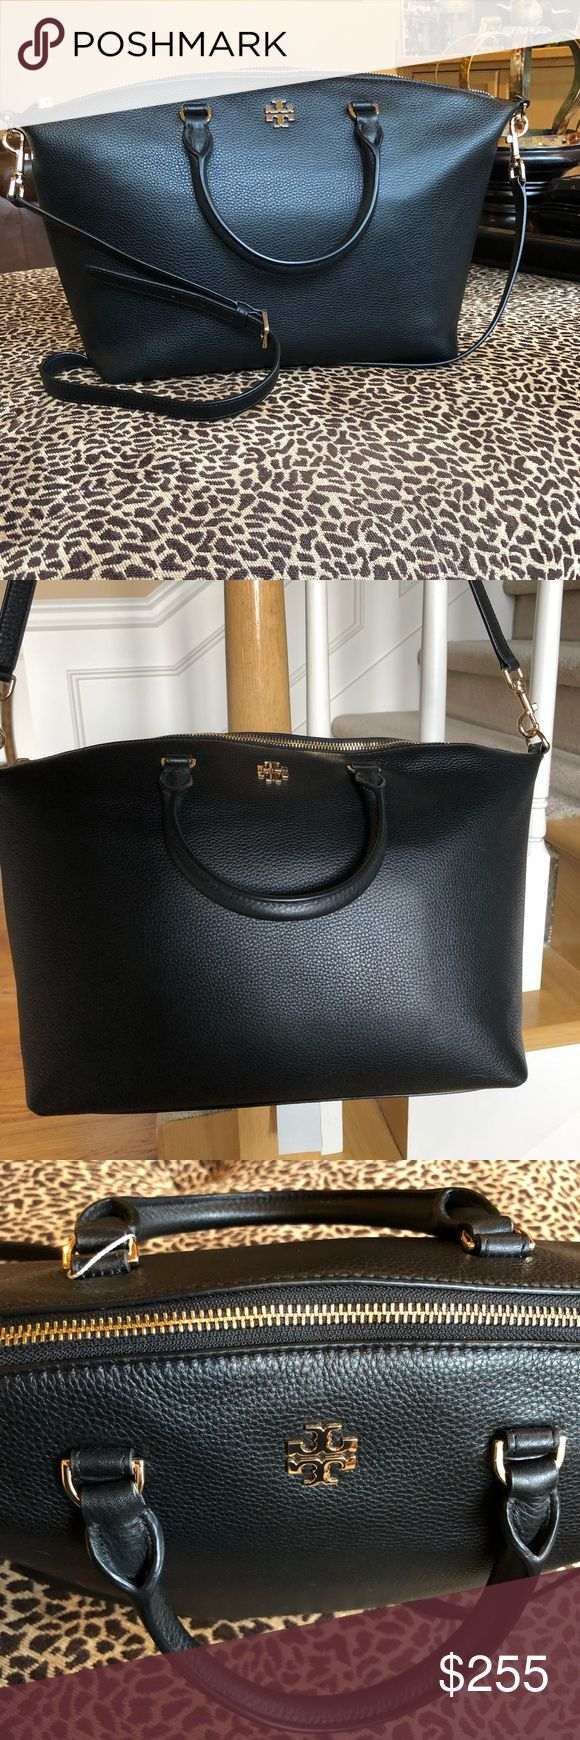 """🆕🖤TORY BURCH SATCHEL🖤 A gilded logo medallion adds signature polish to a clean-lined satchel crafted in rich pebbled leather and topped with smart rolled handles. The top handles can be folded down and out of the way when you carry the piece crossbody style.   •top zip closure •top carry handles; optional adjustable crossbody strap •interior zip and wall pockets •logo jacquard lining •12""""W x 10""""H x 5""""D •22"""" max crossbody strap drop  ABSOLUTELY GORGEOUS!!!  NO TRADES NO LOW BALL OFFERS…"""